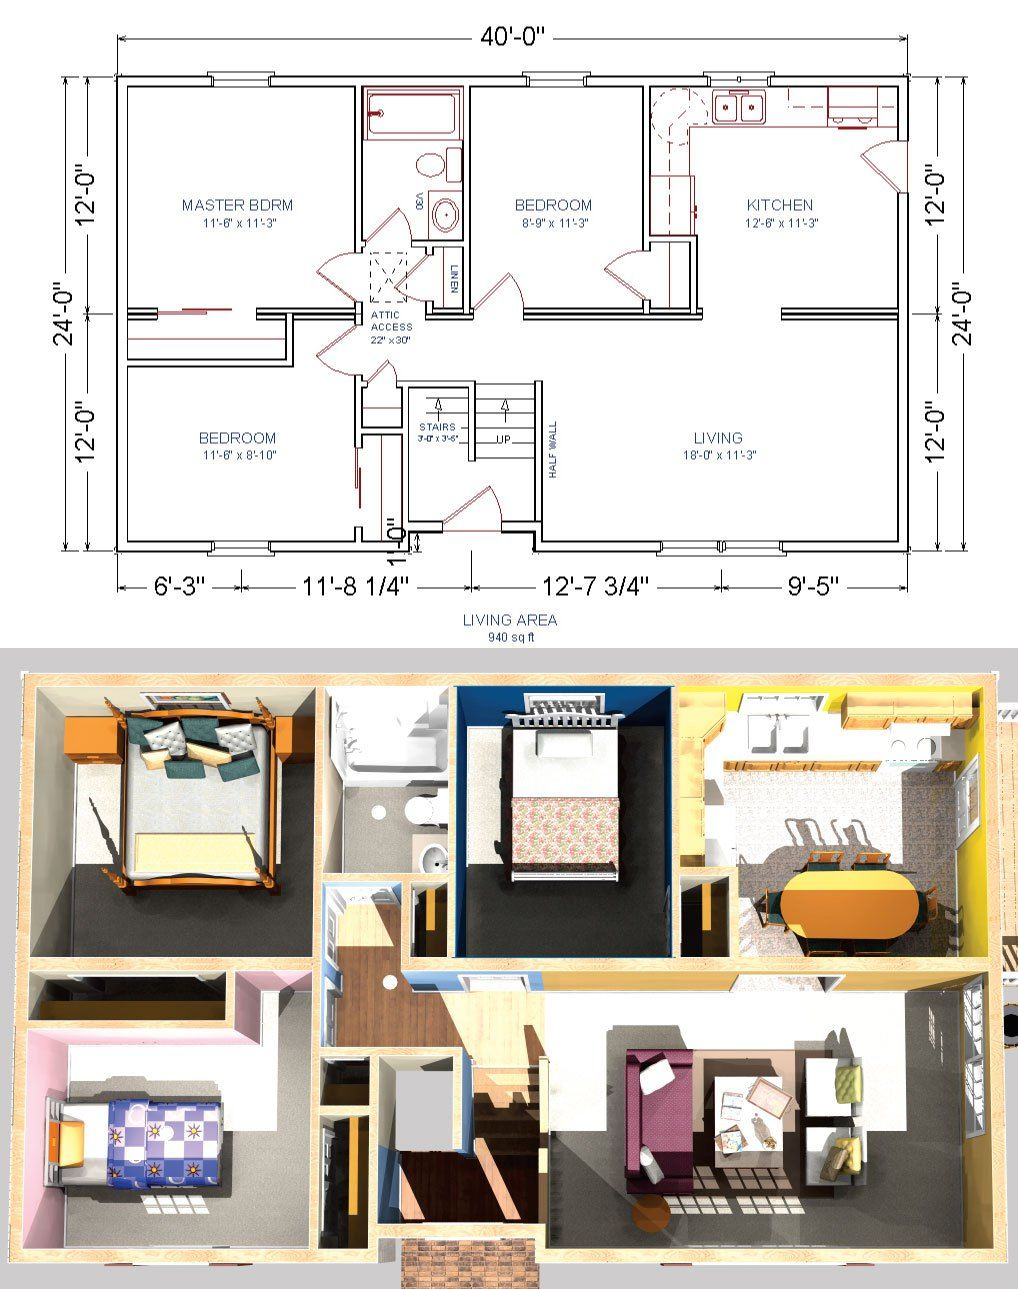 Home Design Ideas. ranch style house plans with bats ... on mediterranean ranch house plans, raised beach house plans coastal, contemporary ranch house plans, raised wood deck plans, one level ranch house plans, dutch colonial homes house plans, simple ranch house floor plans, historical homes house plans, cape cod style beach house plans, victorian homes house plans, barn homes house plans, log homes house plans, country ranch style house plans, garden homes house plans, modern ranch style house plans, modular homes house plans, easy raised ranch house plans, split ranch house plans, patio homes house plans,